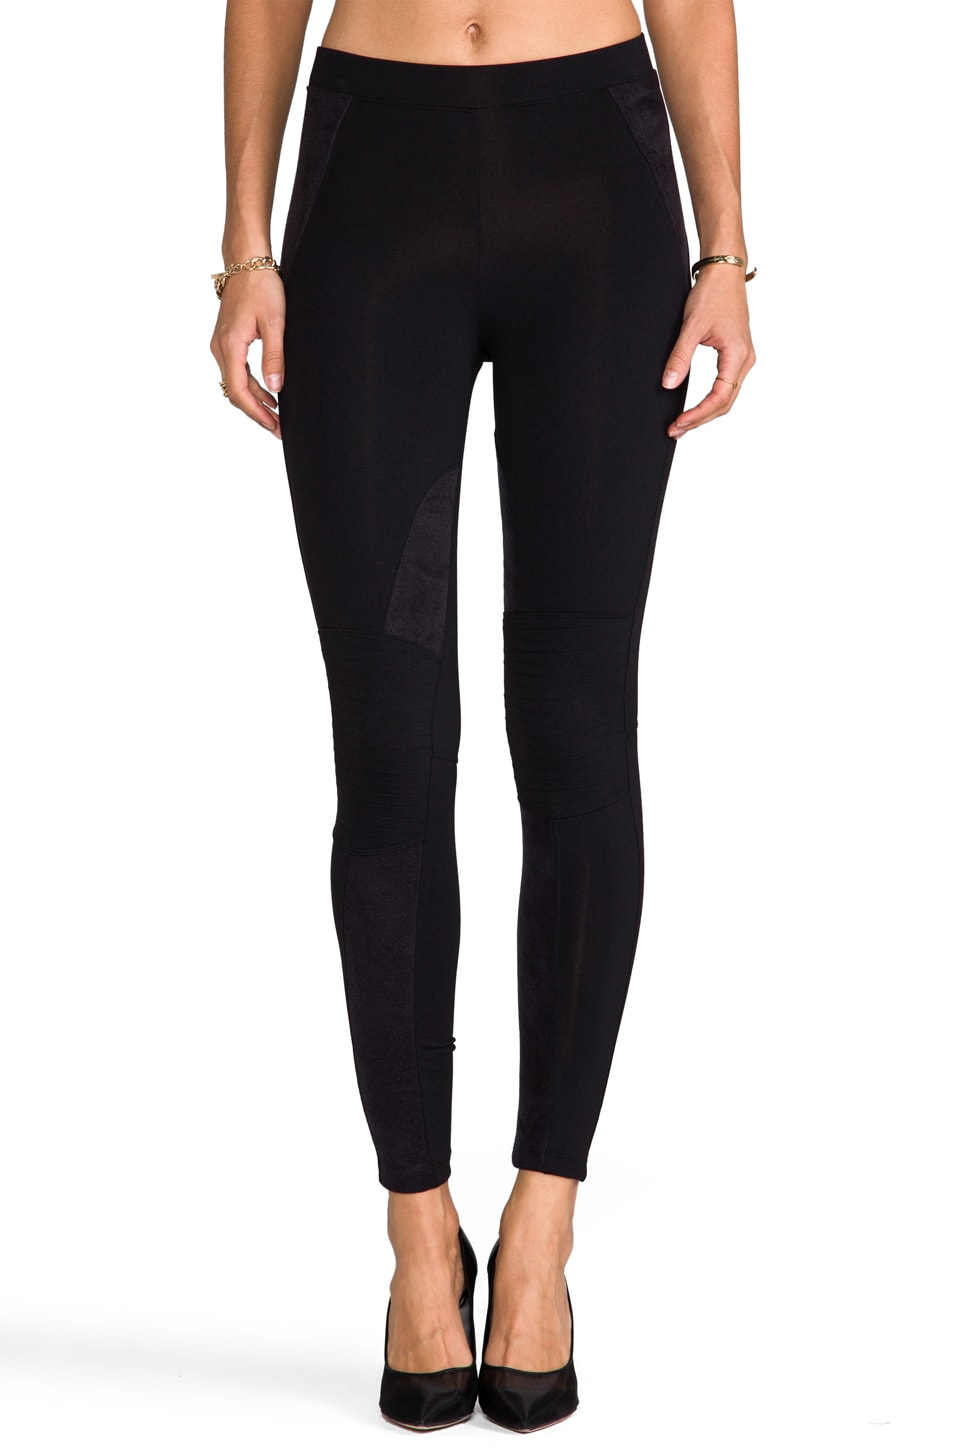 David Lerner Motorcycle Legging in Black